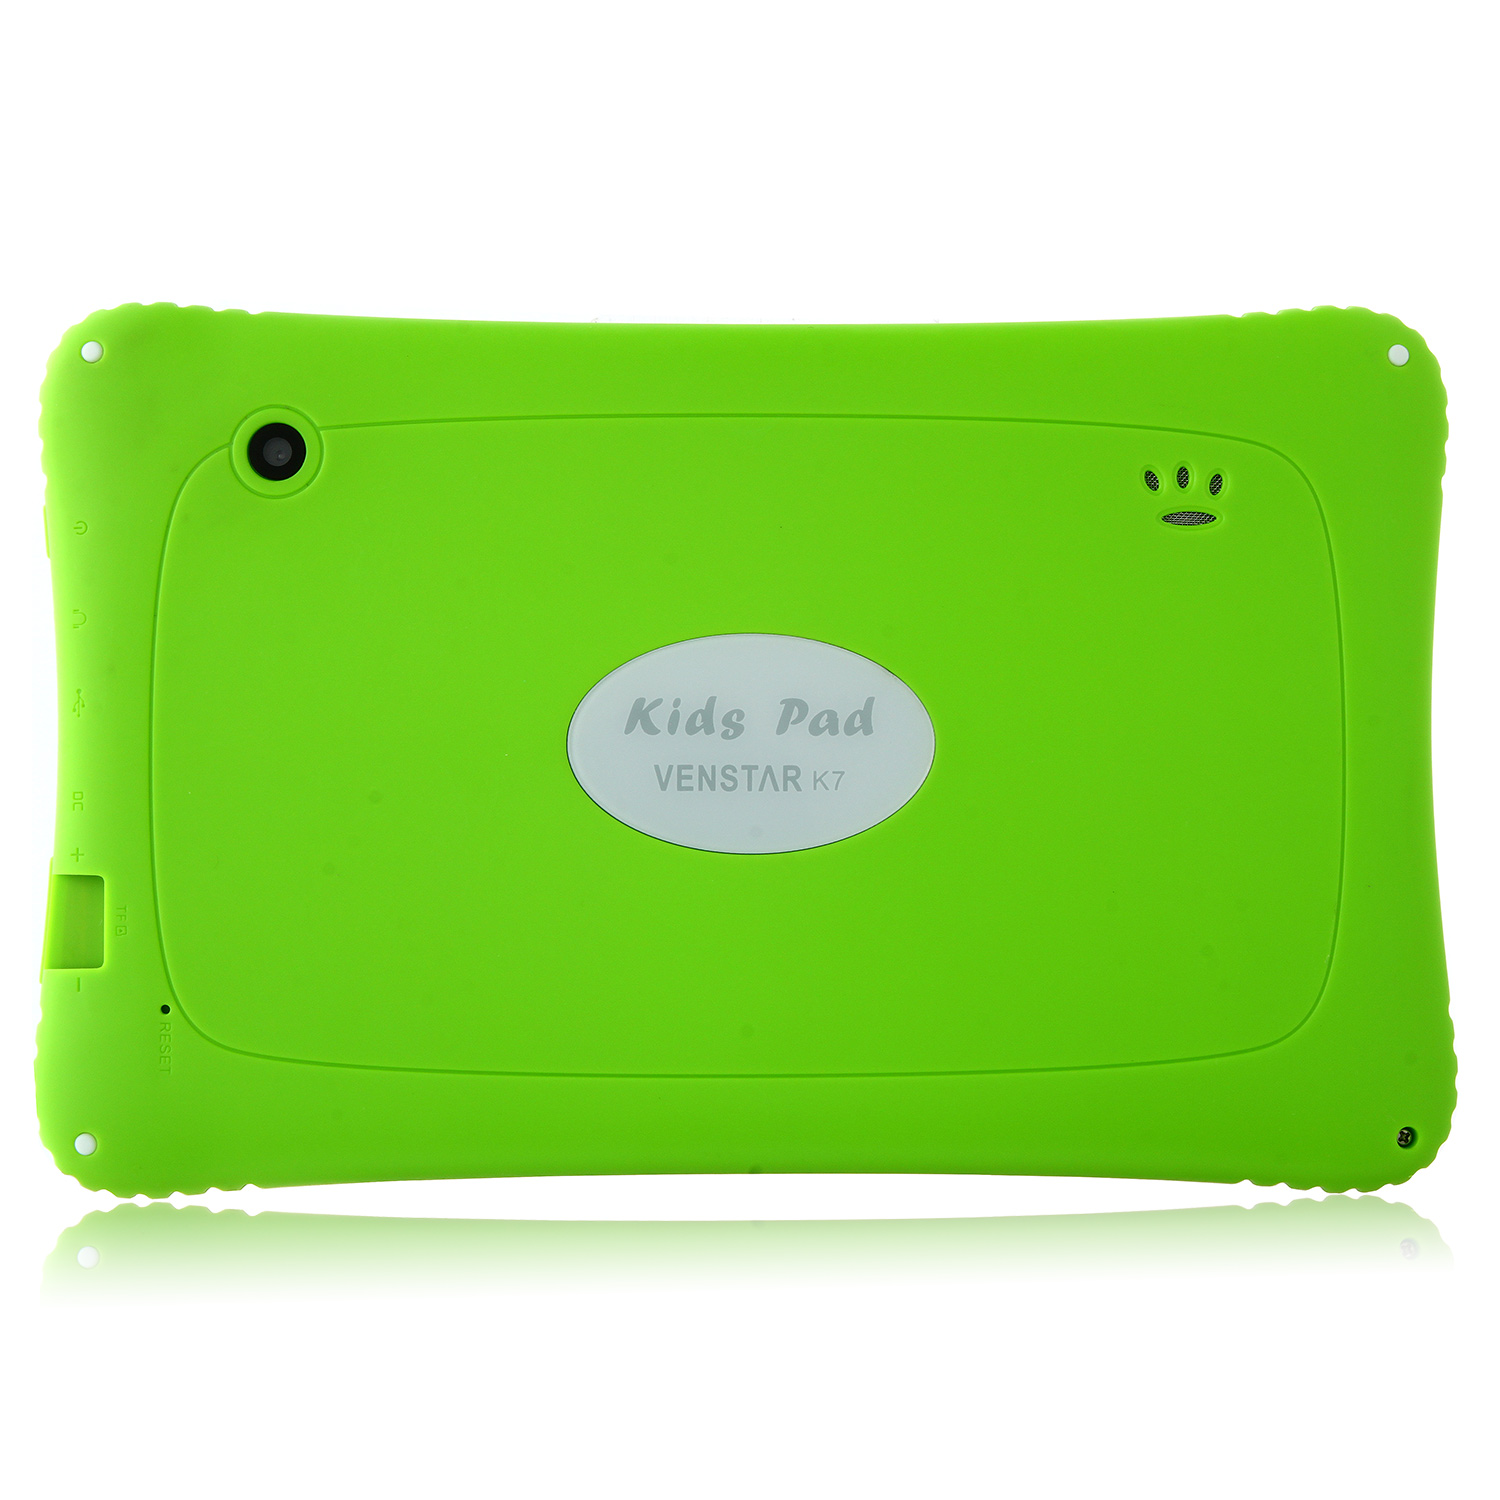 VENSTAR K7(V700A) Kid's Tablet PC Dual Core RK3026 7 Inch Android 4.2 IPS 8GB Green